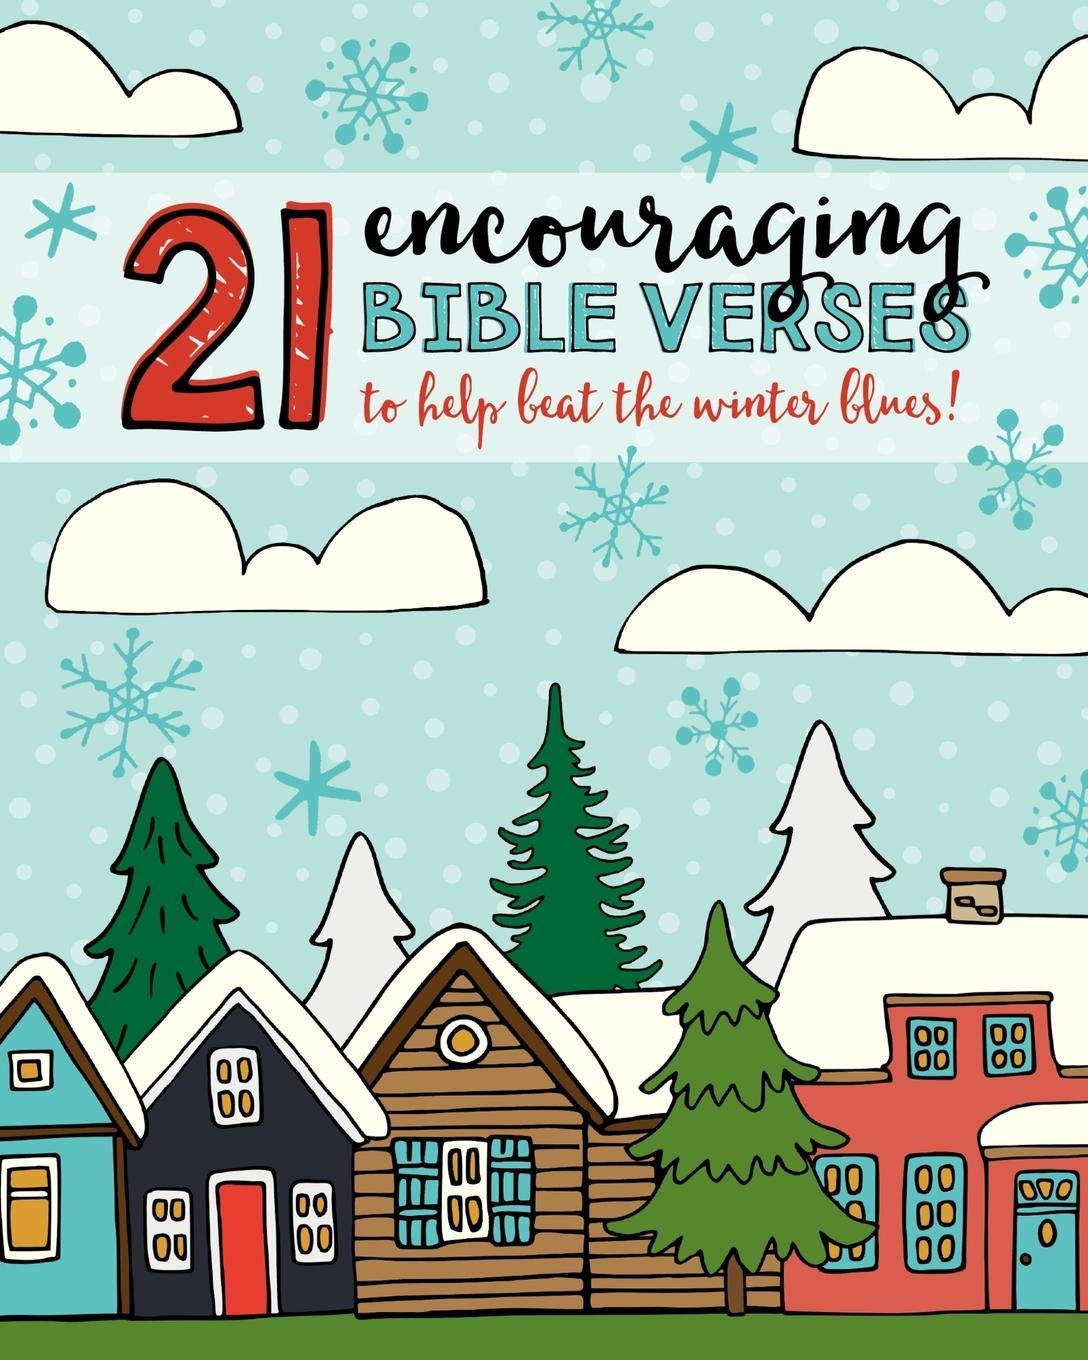 21 Encouraging Bible Verses to Help Beat the Winter Blues